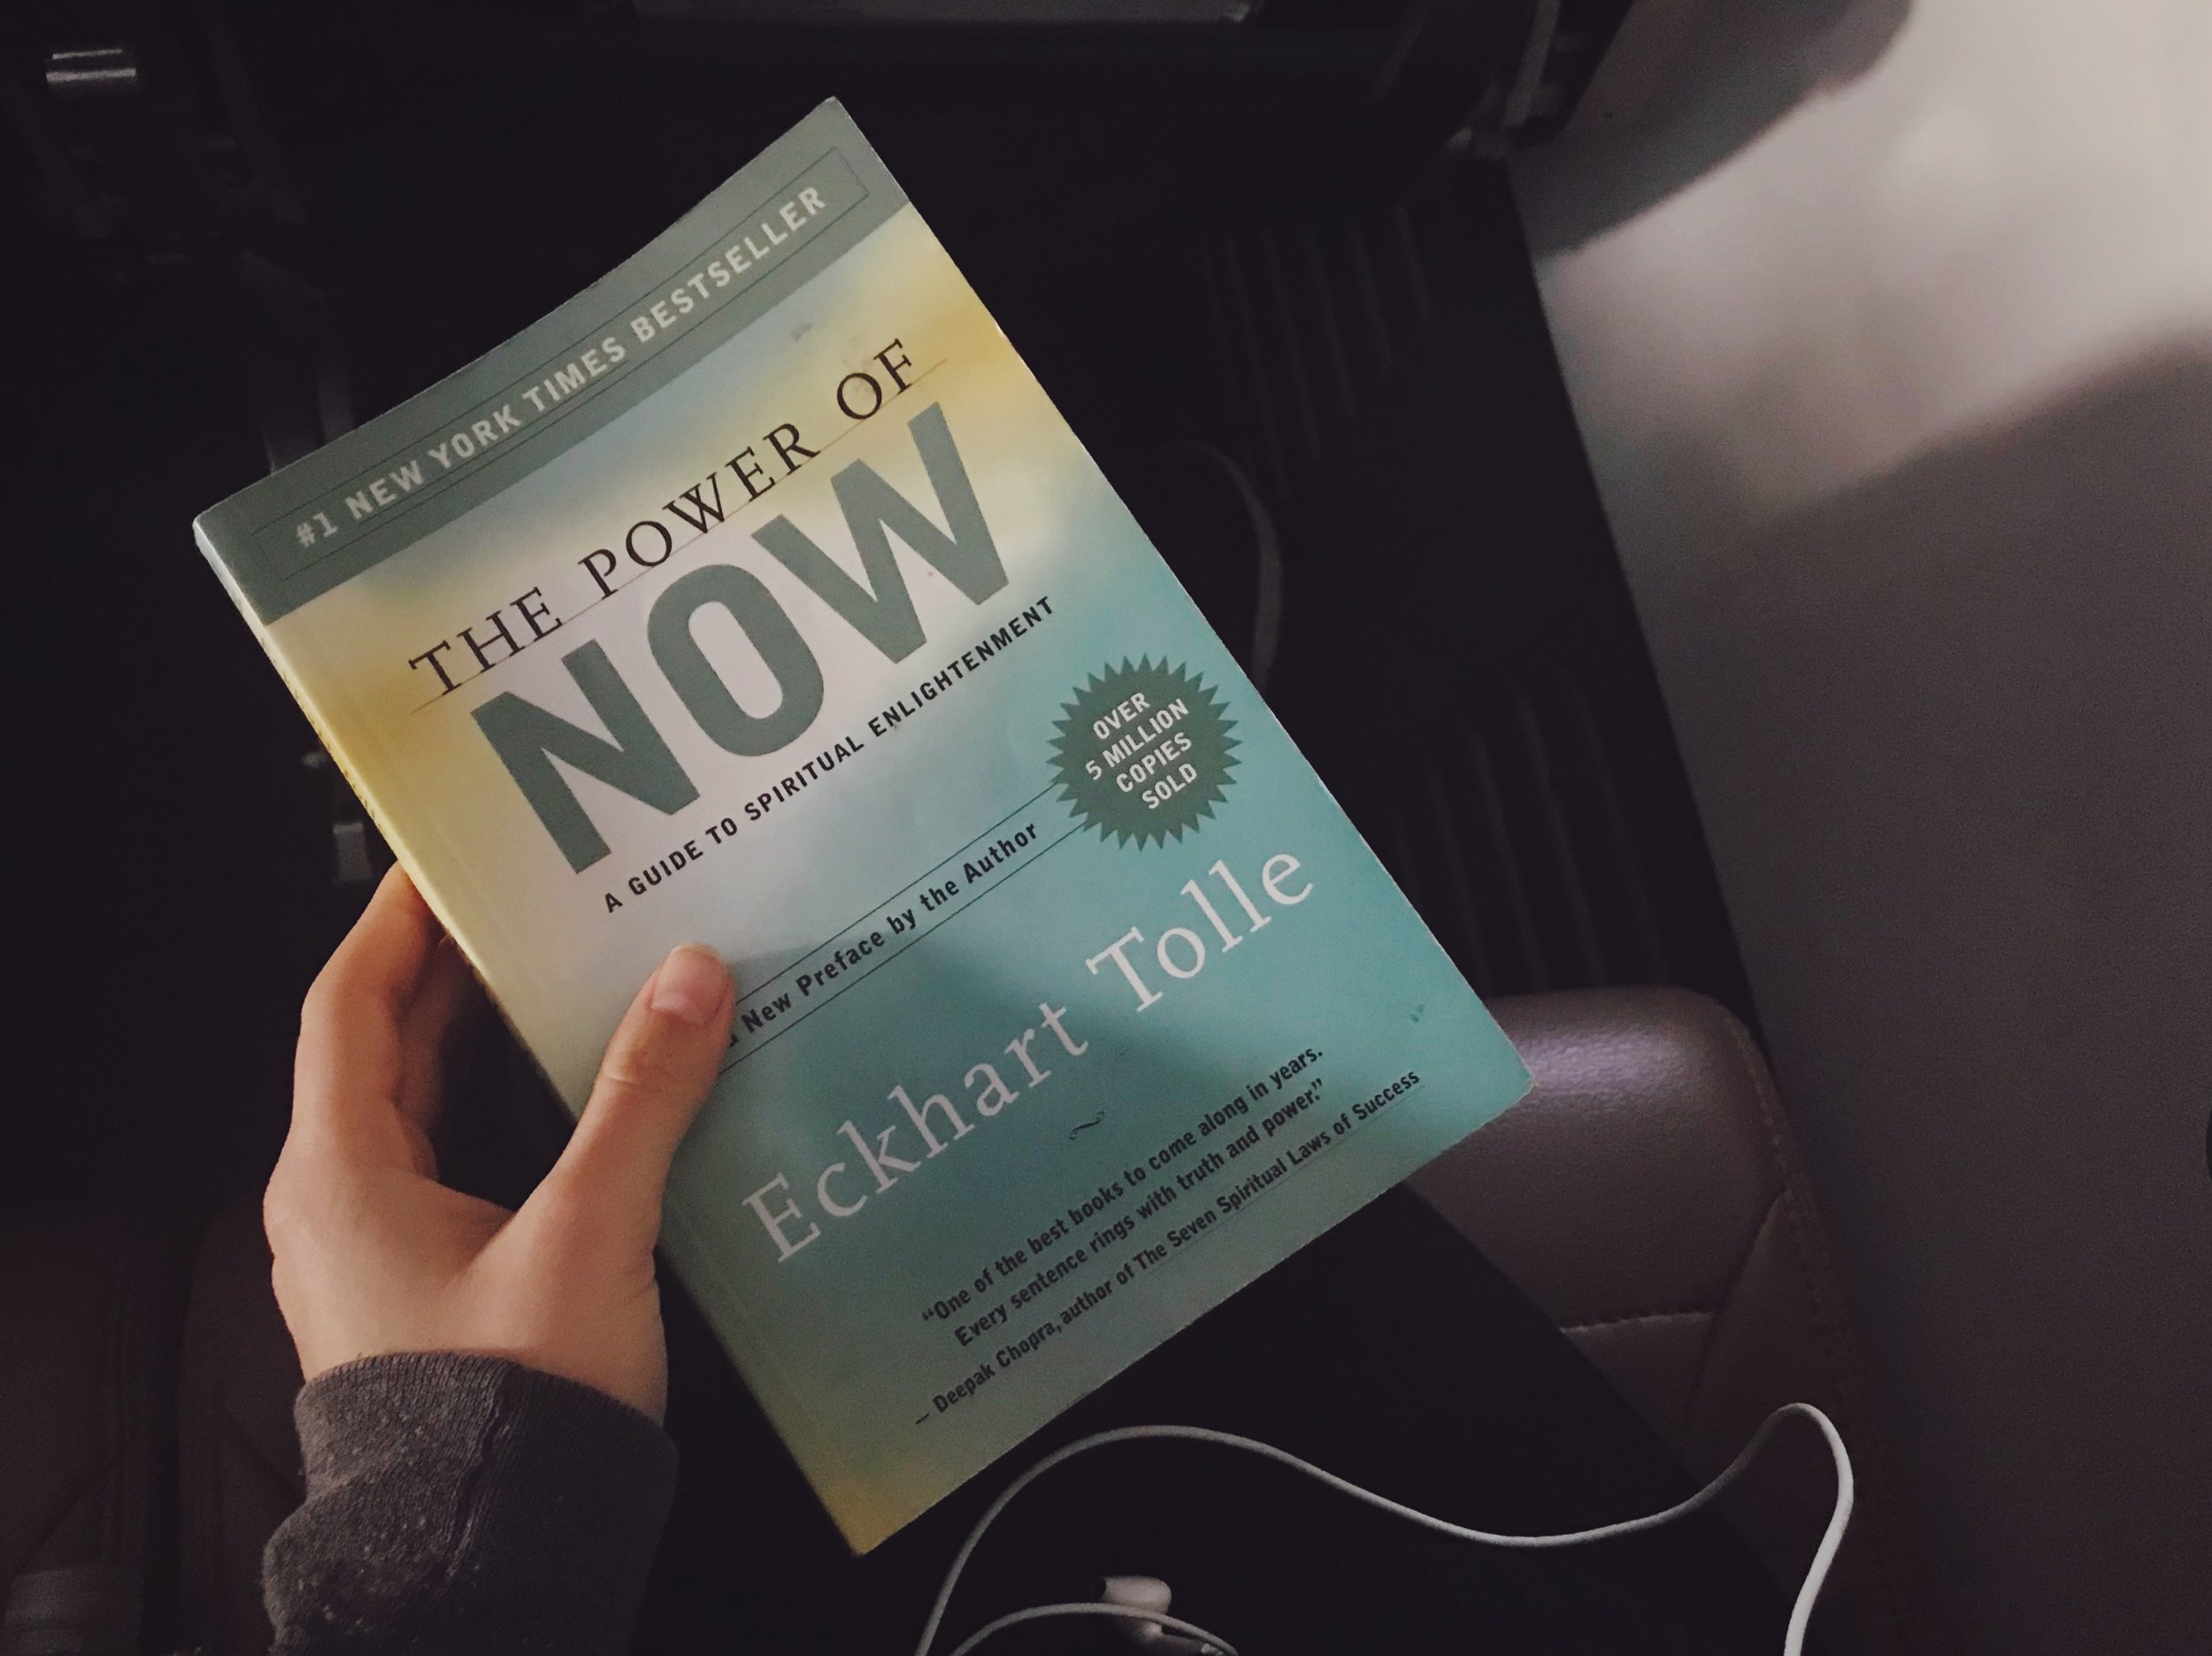 Plane reads:  The Power Of Now    by Eckhart Tolle